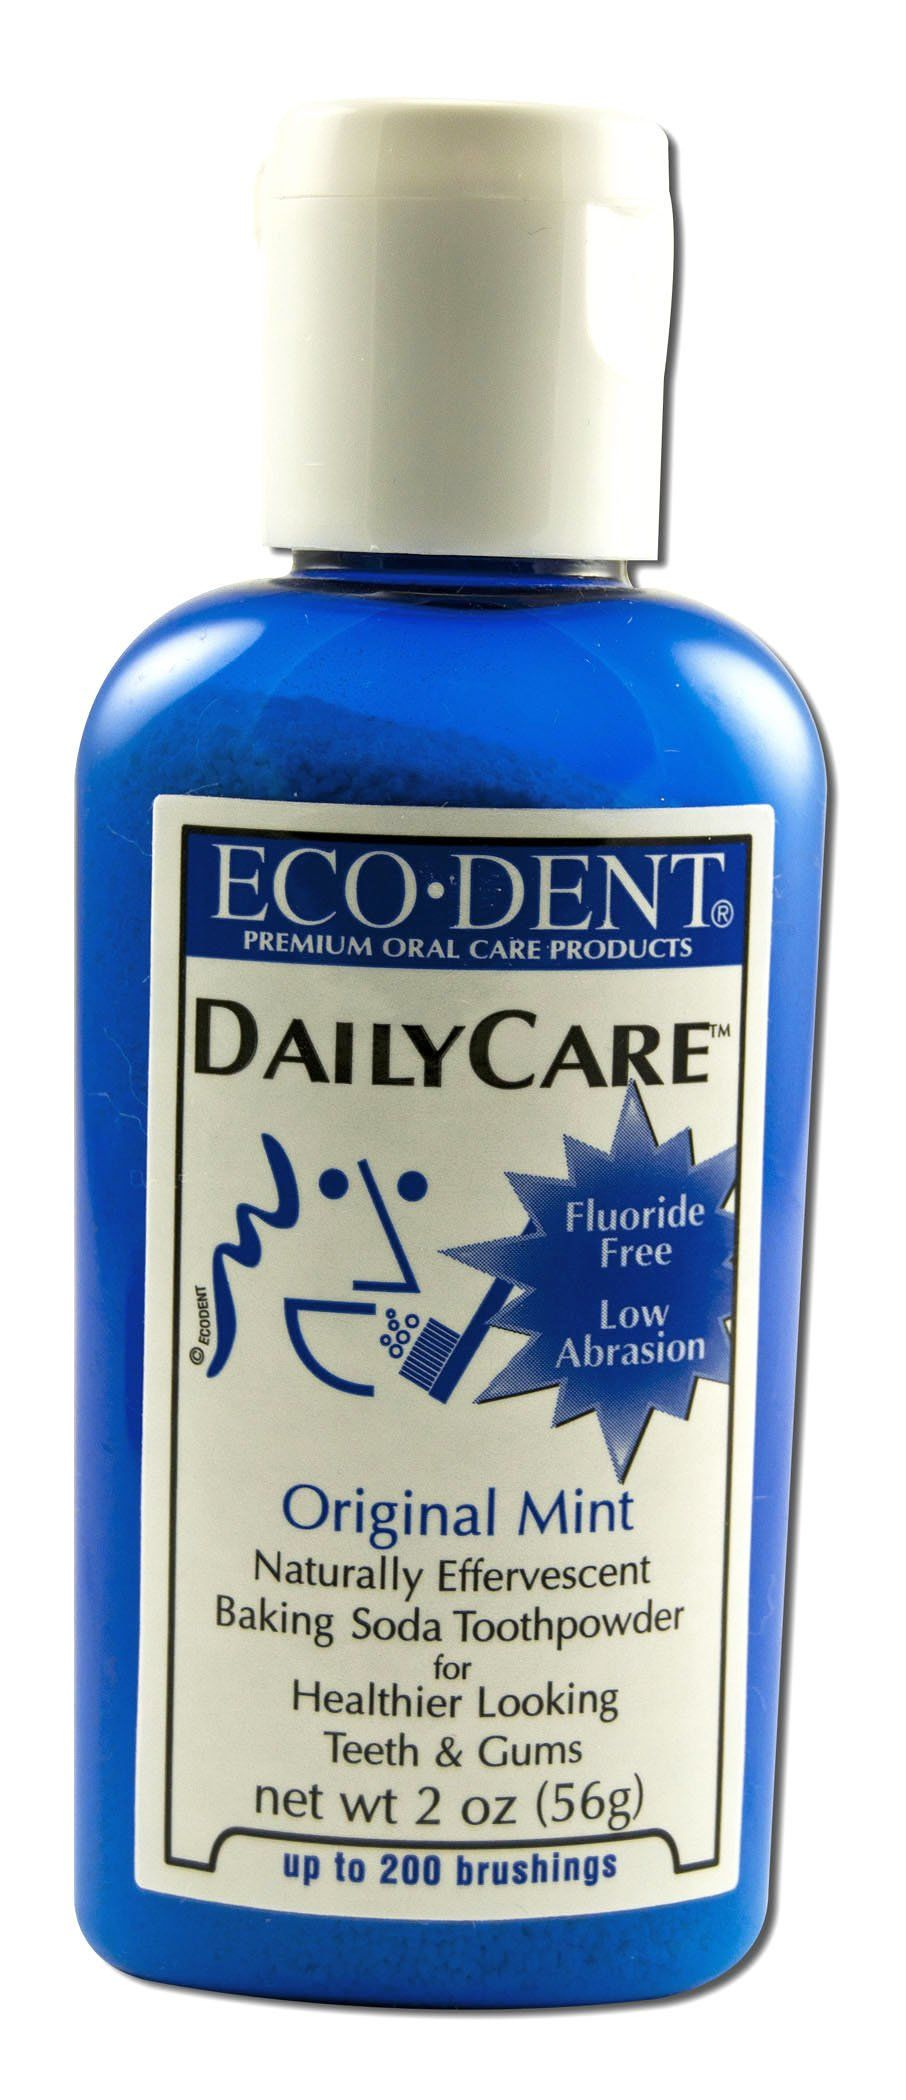 EcoDent Daily Care Baking Powder Toothpowder